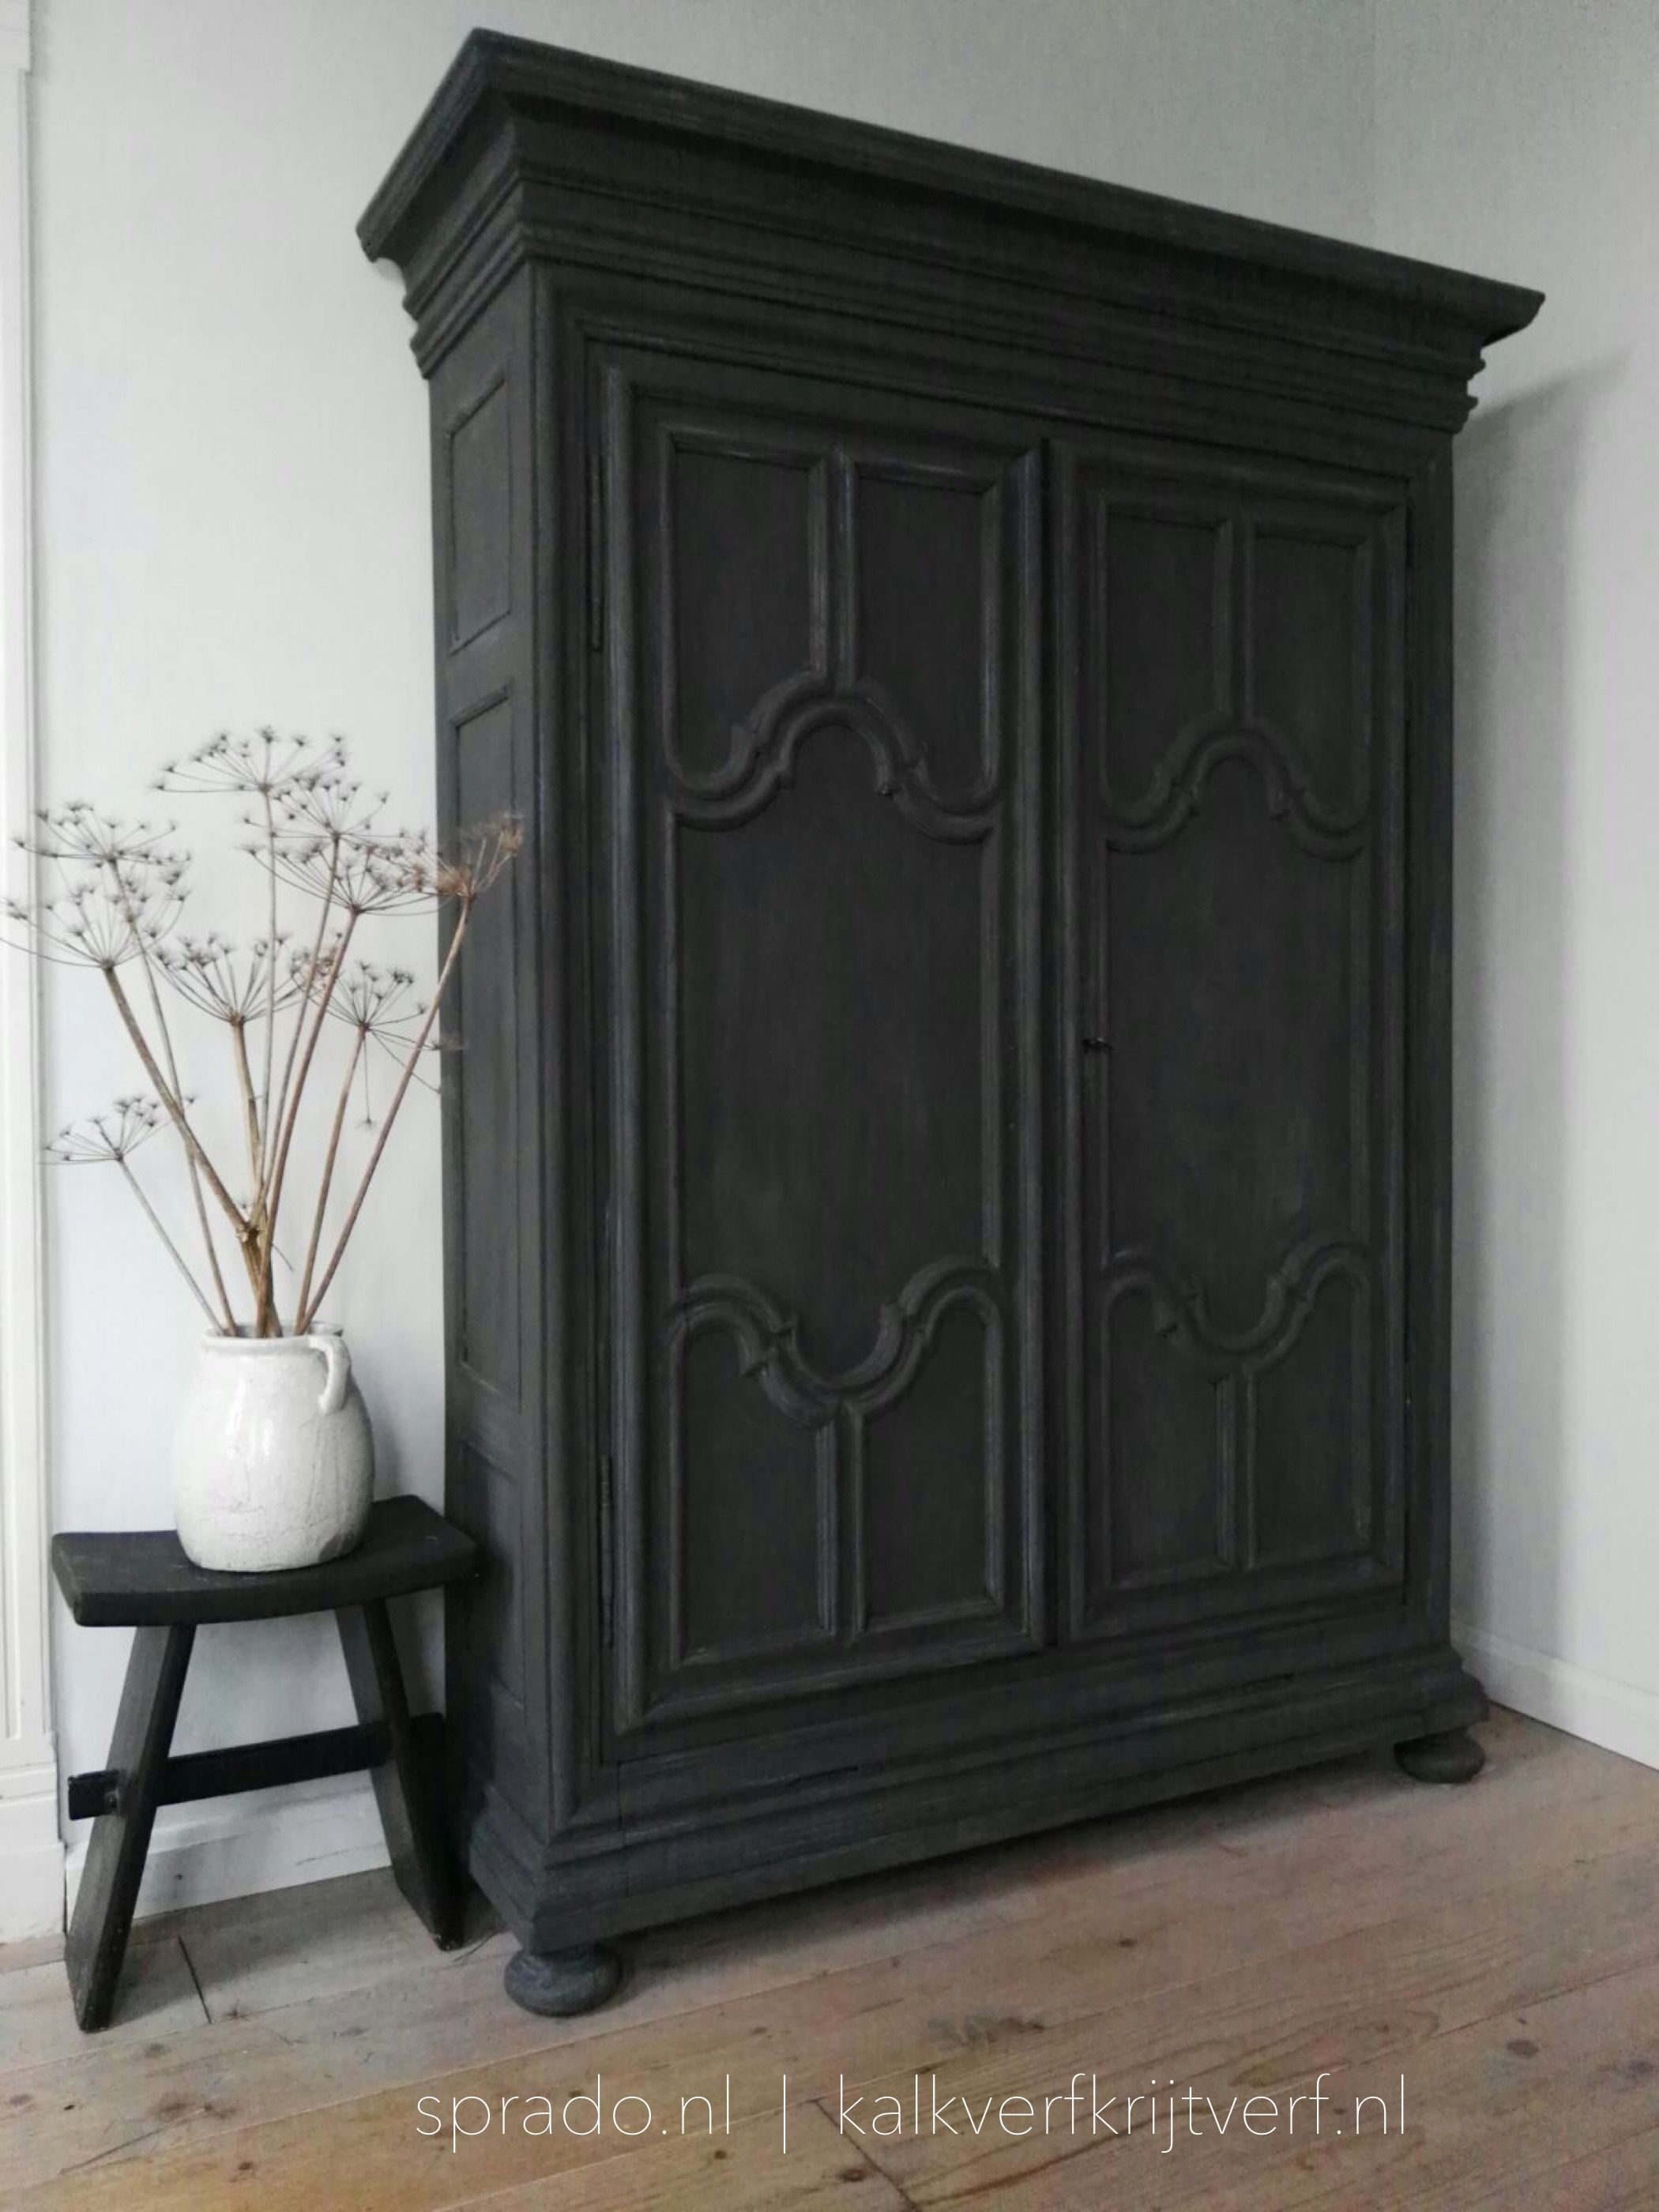 This Cabinet Is Painted With Fresco Lime Paint Coloure